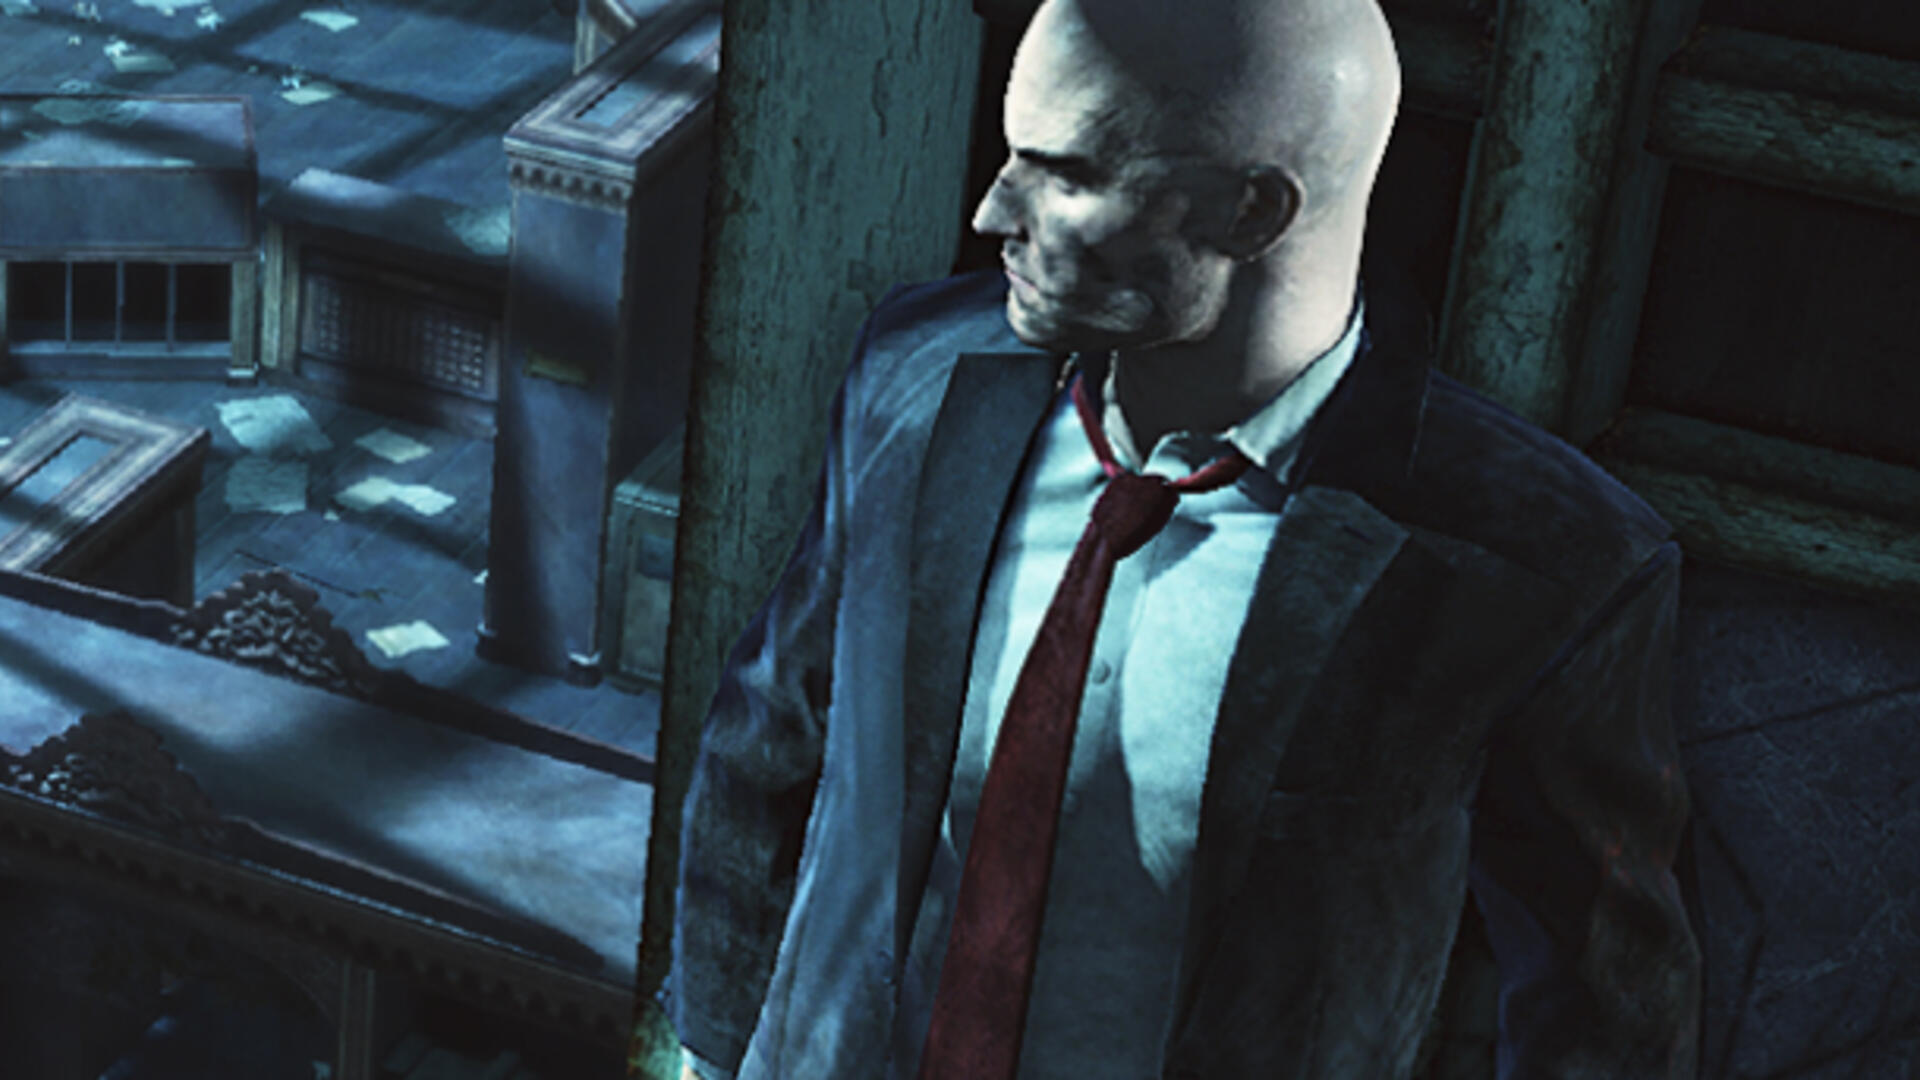 Hitman Blood Money And Absolution Get Facelift In Hd Enhanced Collection Usgamer